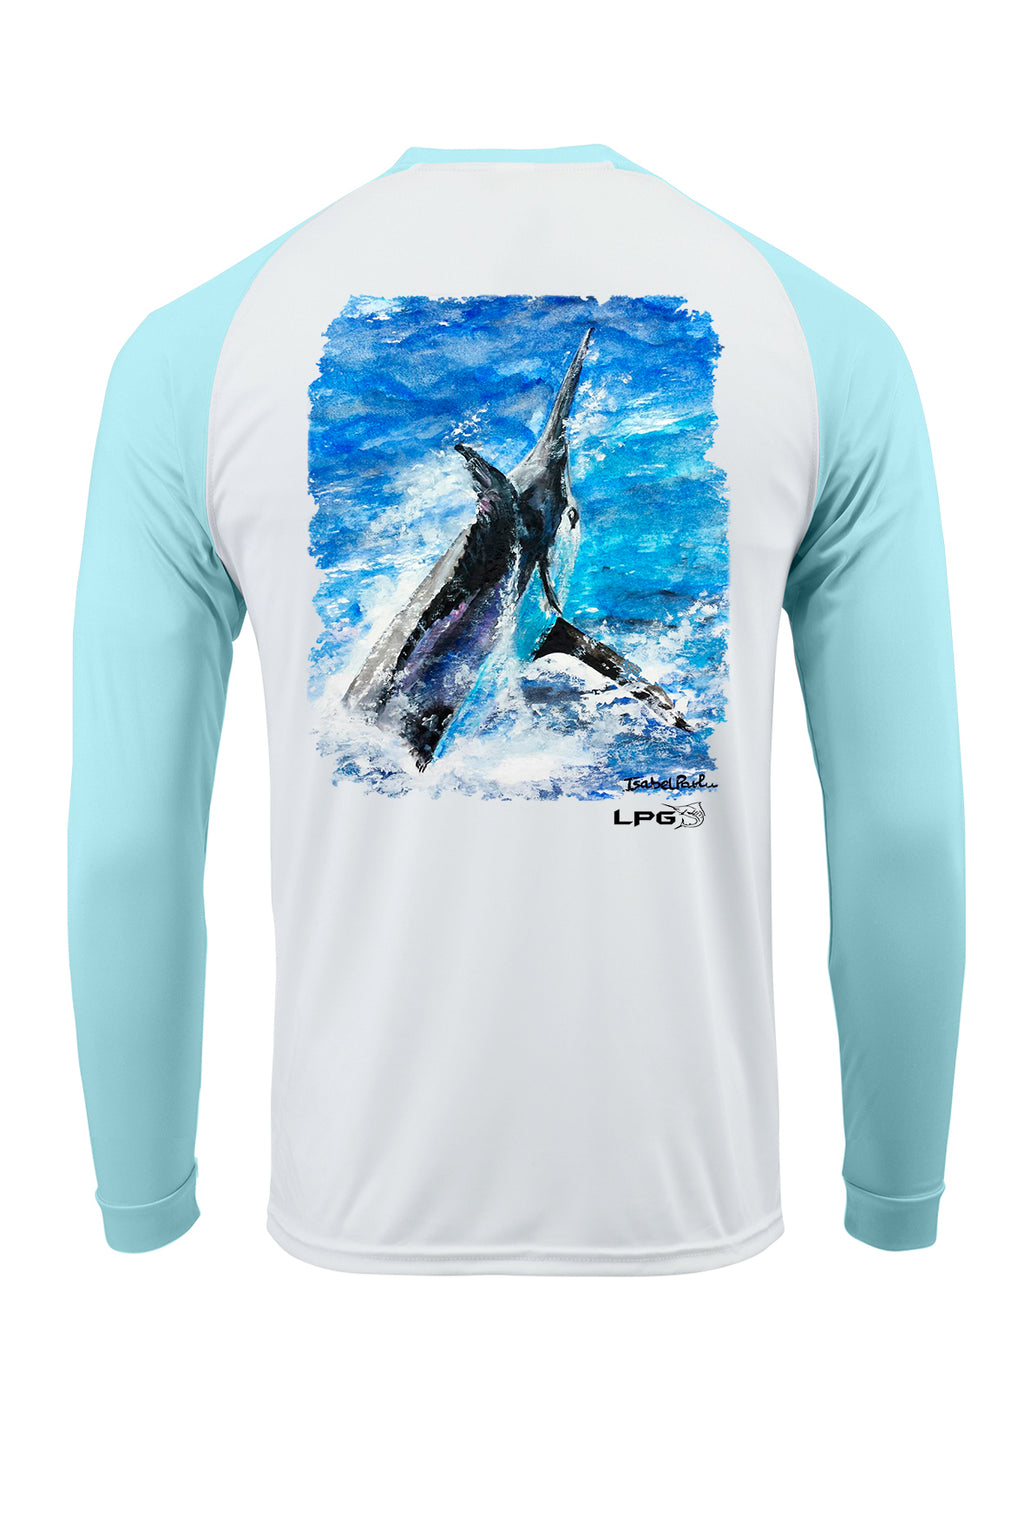 LPG Apparel Co. Grander Marlin Bahama Style Rashguard LS Performance UPF 50+ T-Shirt - Lobo Performance Gear